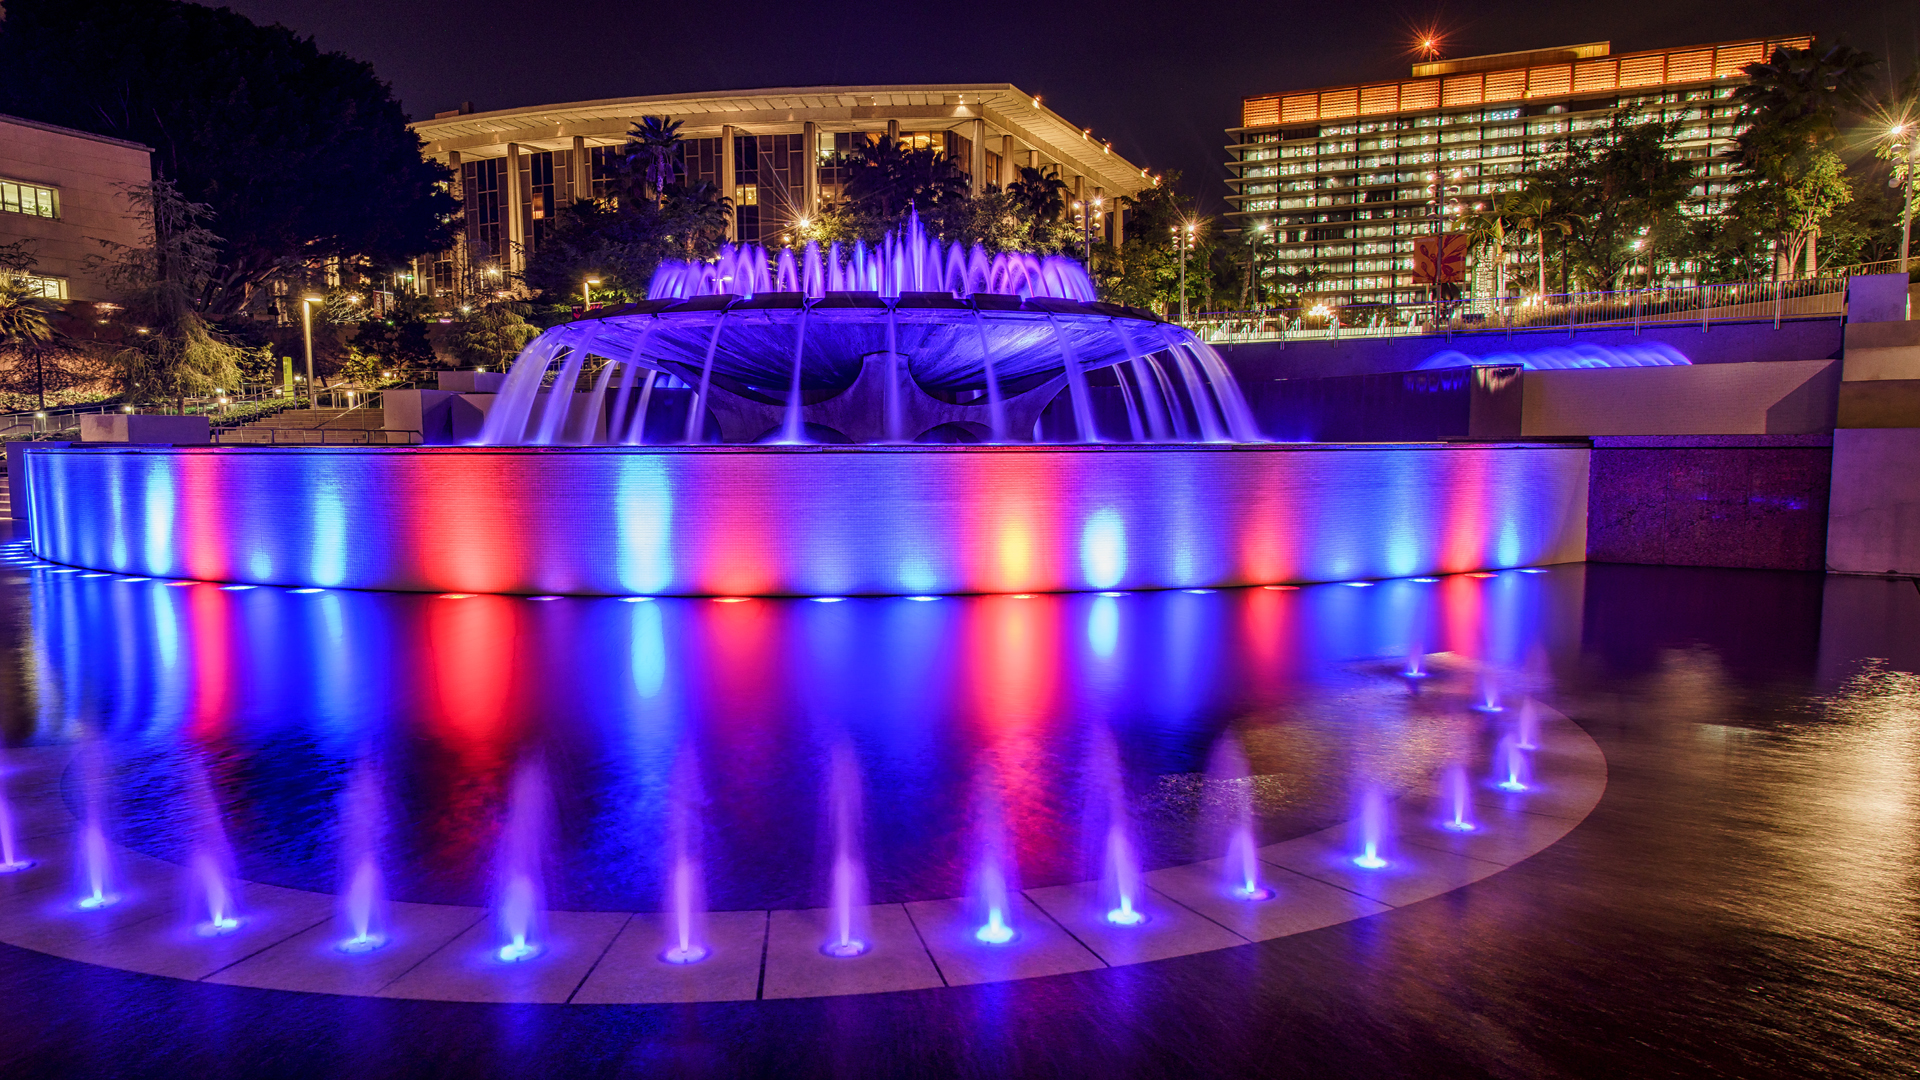 GrandParkFountain2